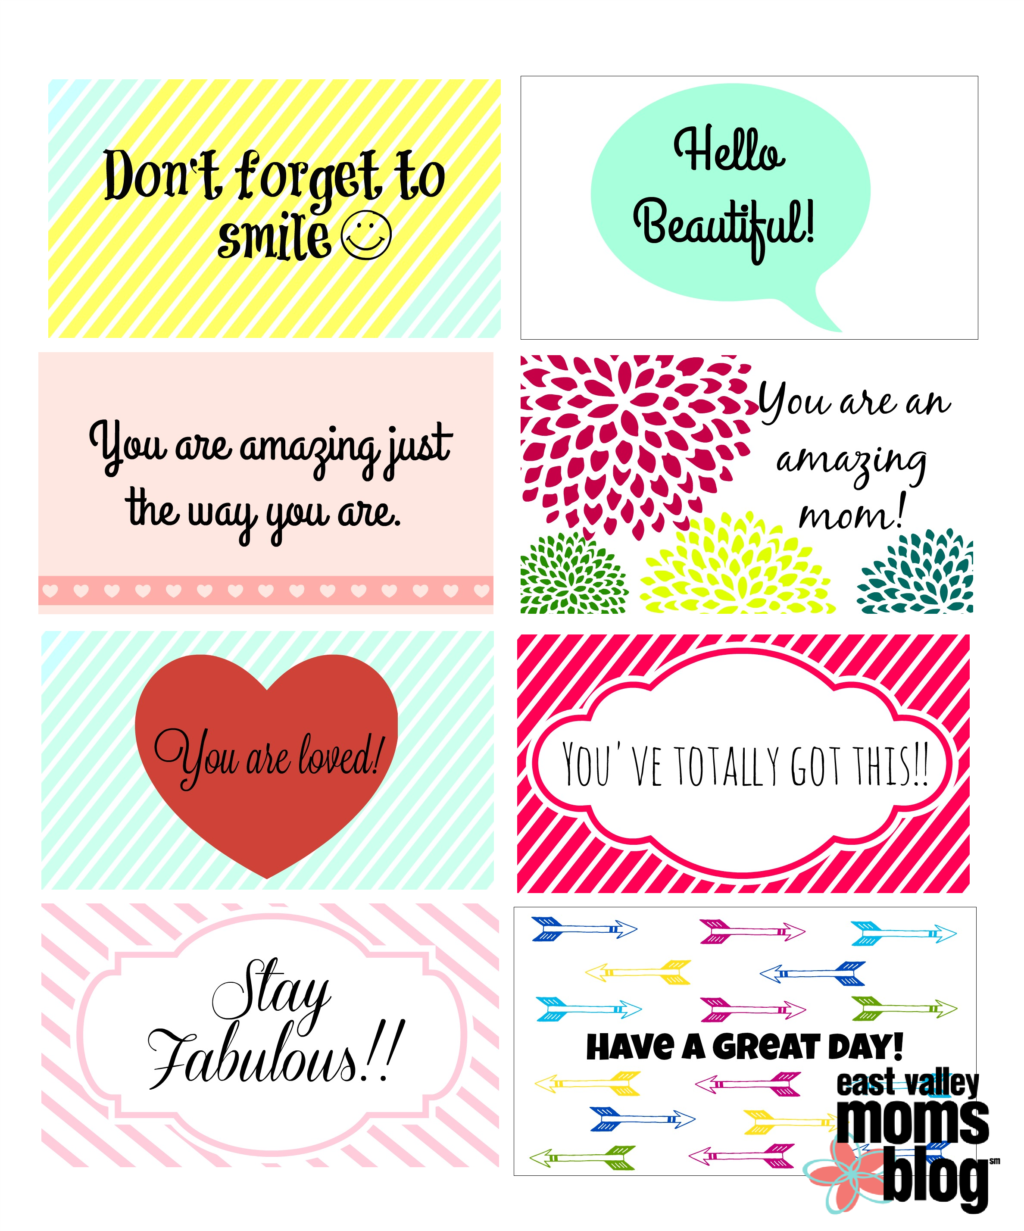 graphic regarding Random Acts of Kindness Cards Printable referred to as Random Functions of Kindness Kindness Starts With Me